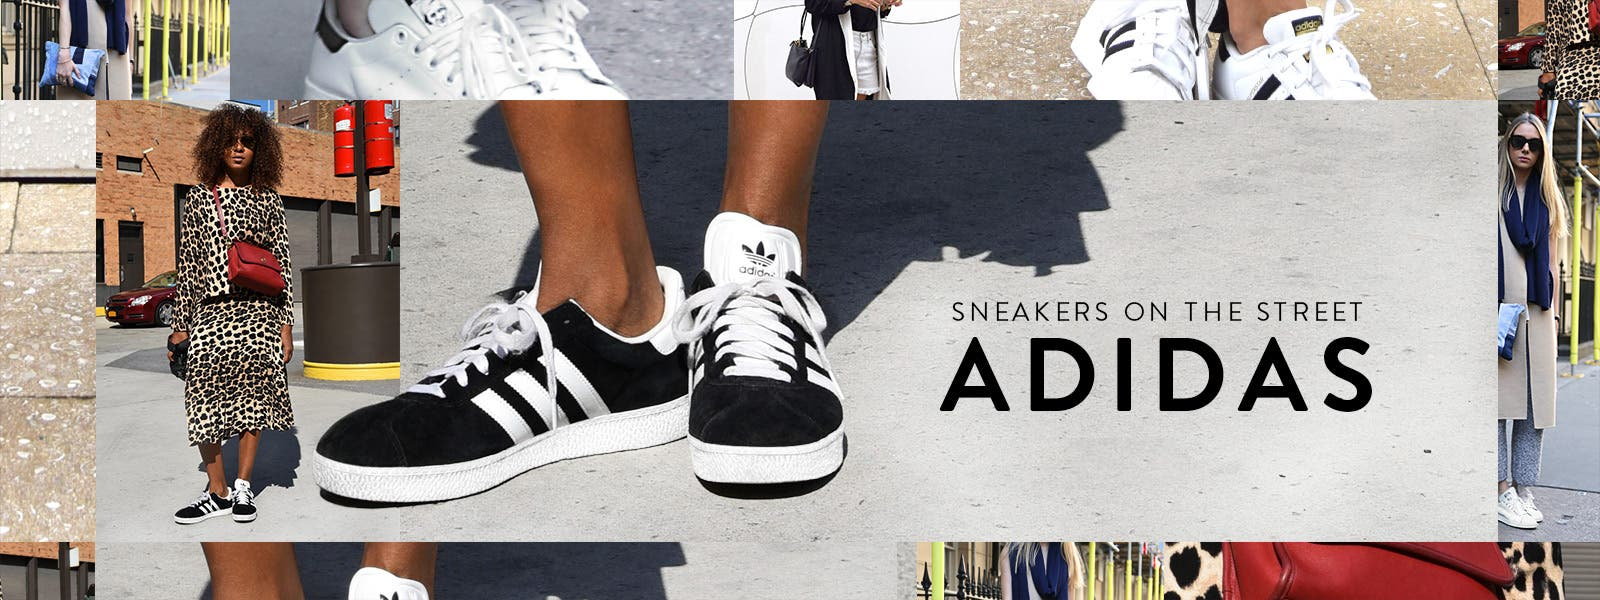 adidas women's sneakers on the street.